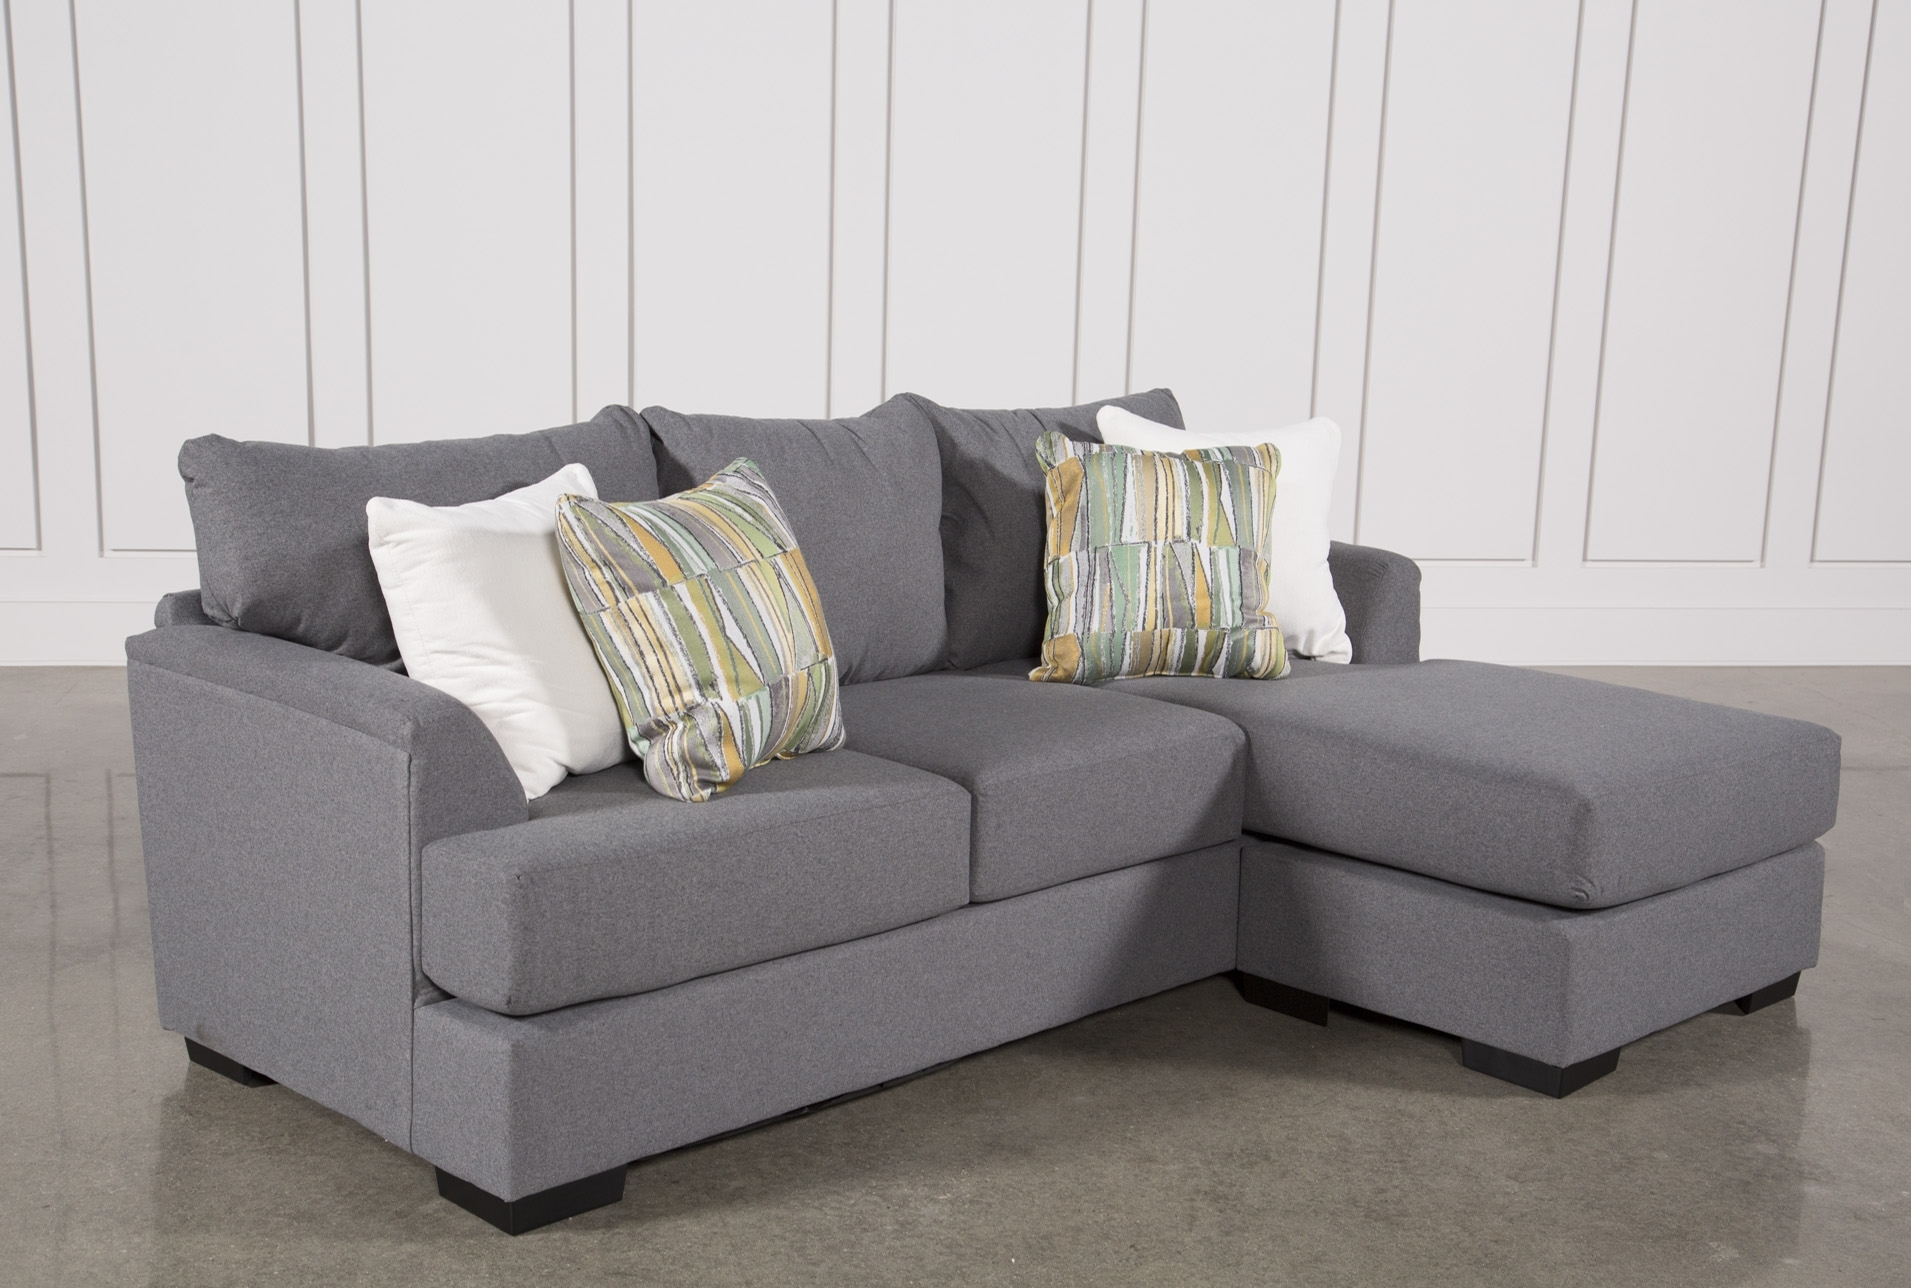 Keegan Sofa W/reversible Chaise | Products | Pinterest | Products intended for Egan Ii Cement Sofa Sectionals With Reversible Chaise (Image 17 of 30)